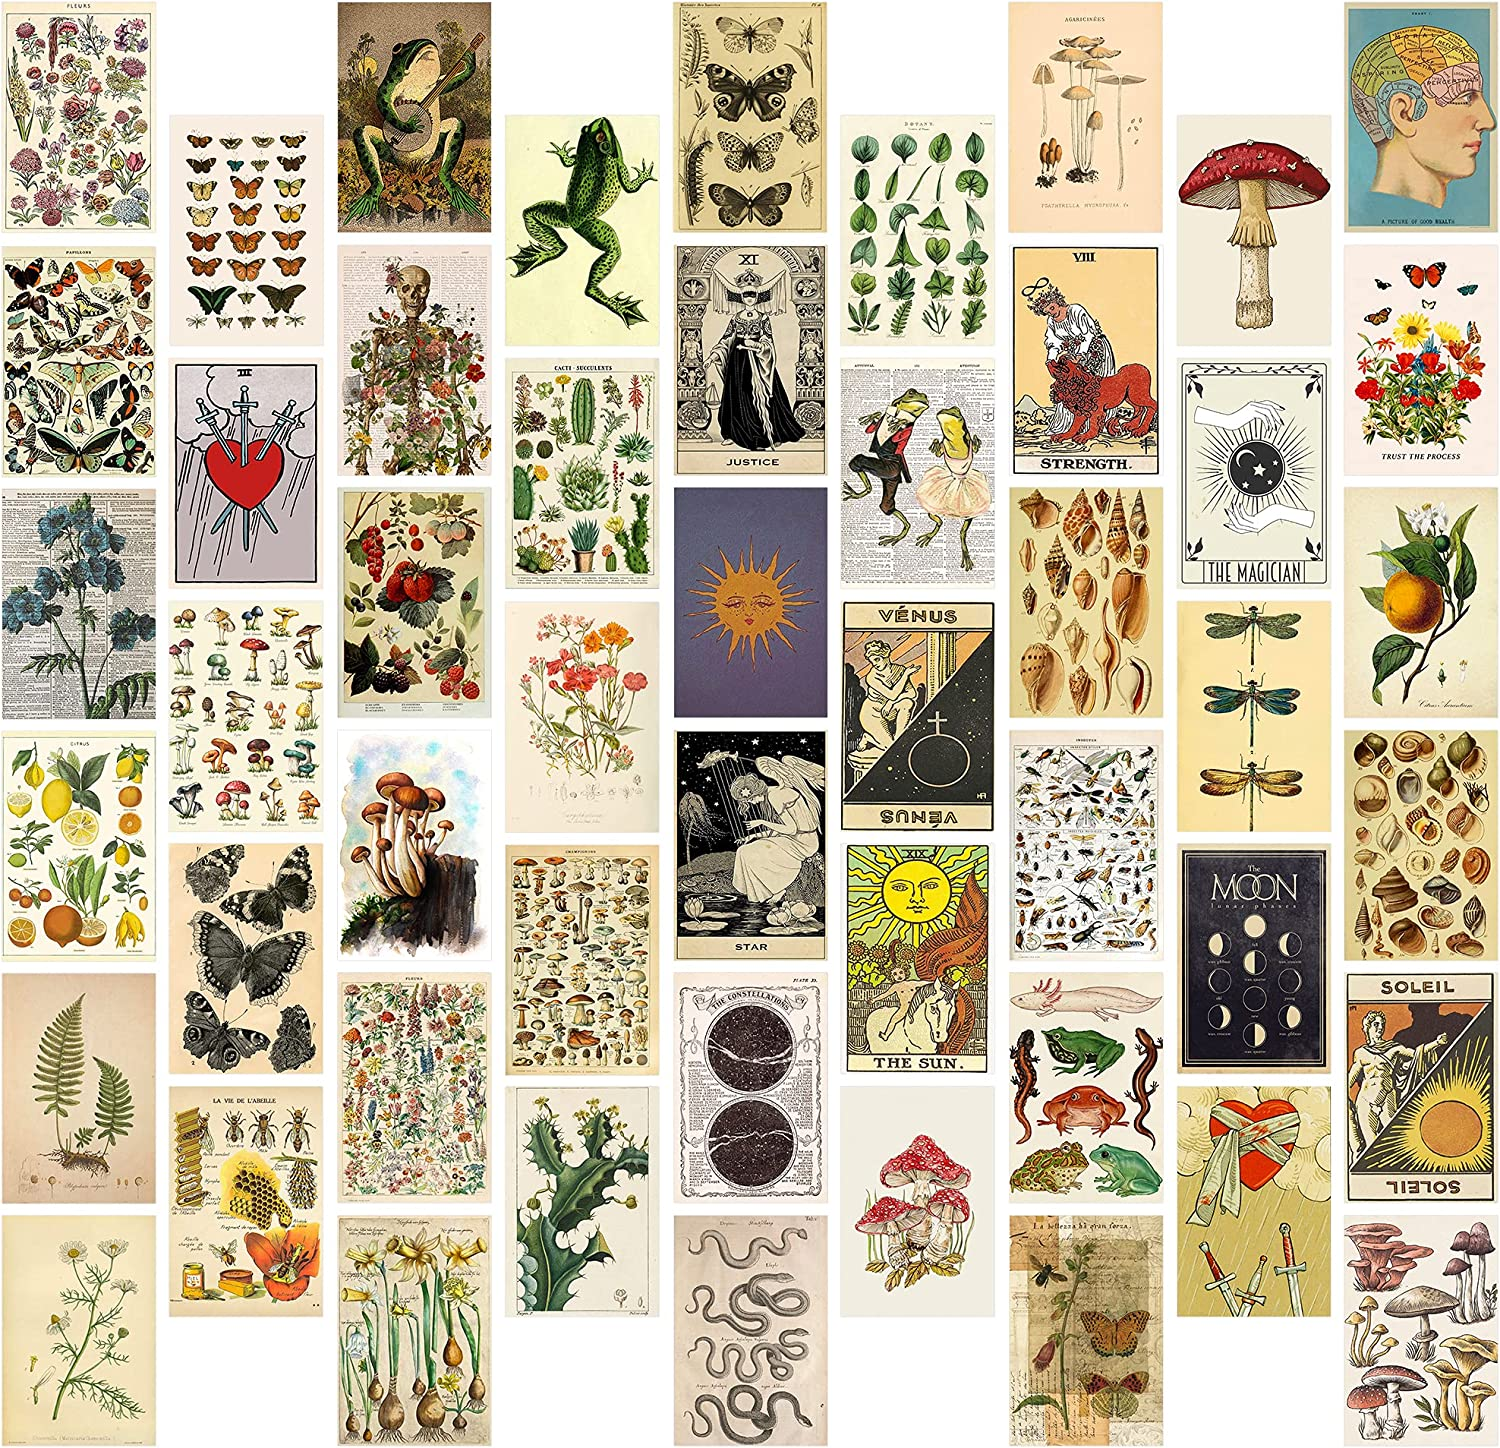 8TEHEVIN 50PCS Vintage Botanical Tarot Aesthetic Pictures Wall Collage Kit, Trendy Small Poster for Dorm, Vintage Style Wall Art Print, Aesthetic Photo Collection, Bedroom Decor for Teens Boys Girls